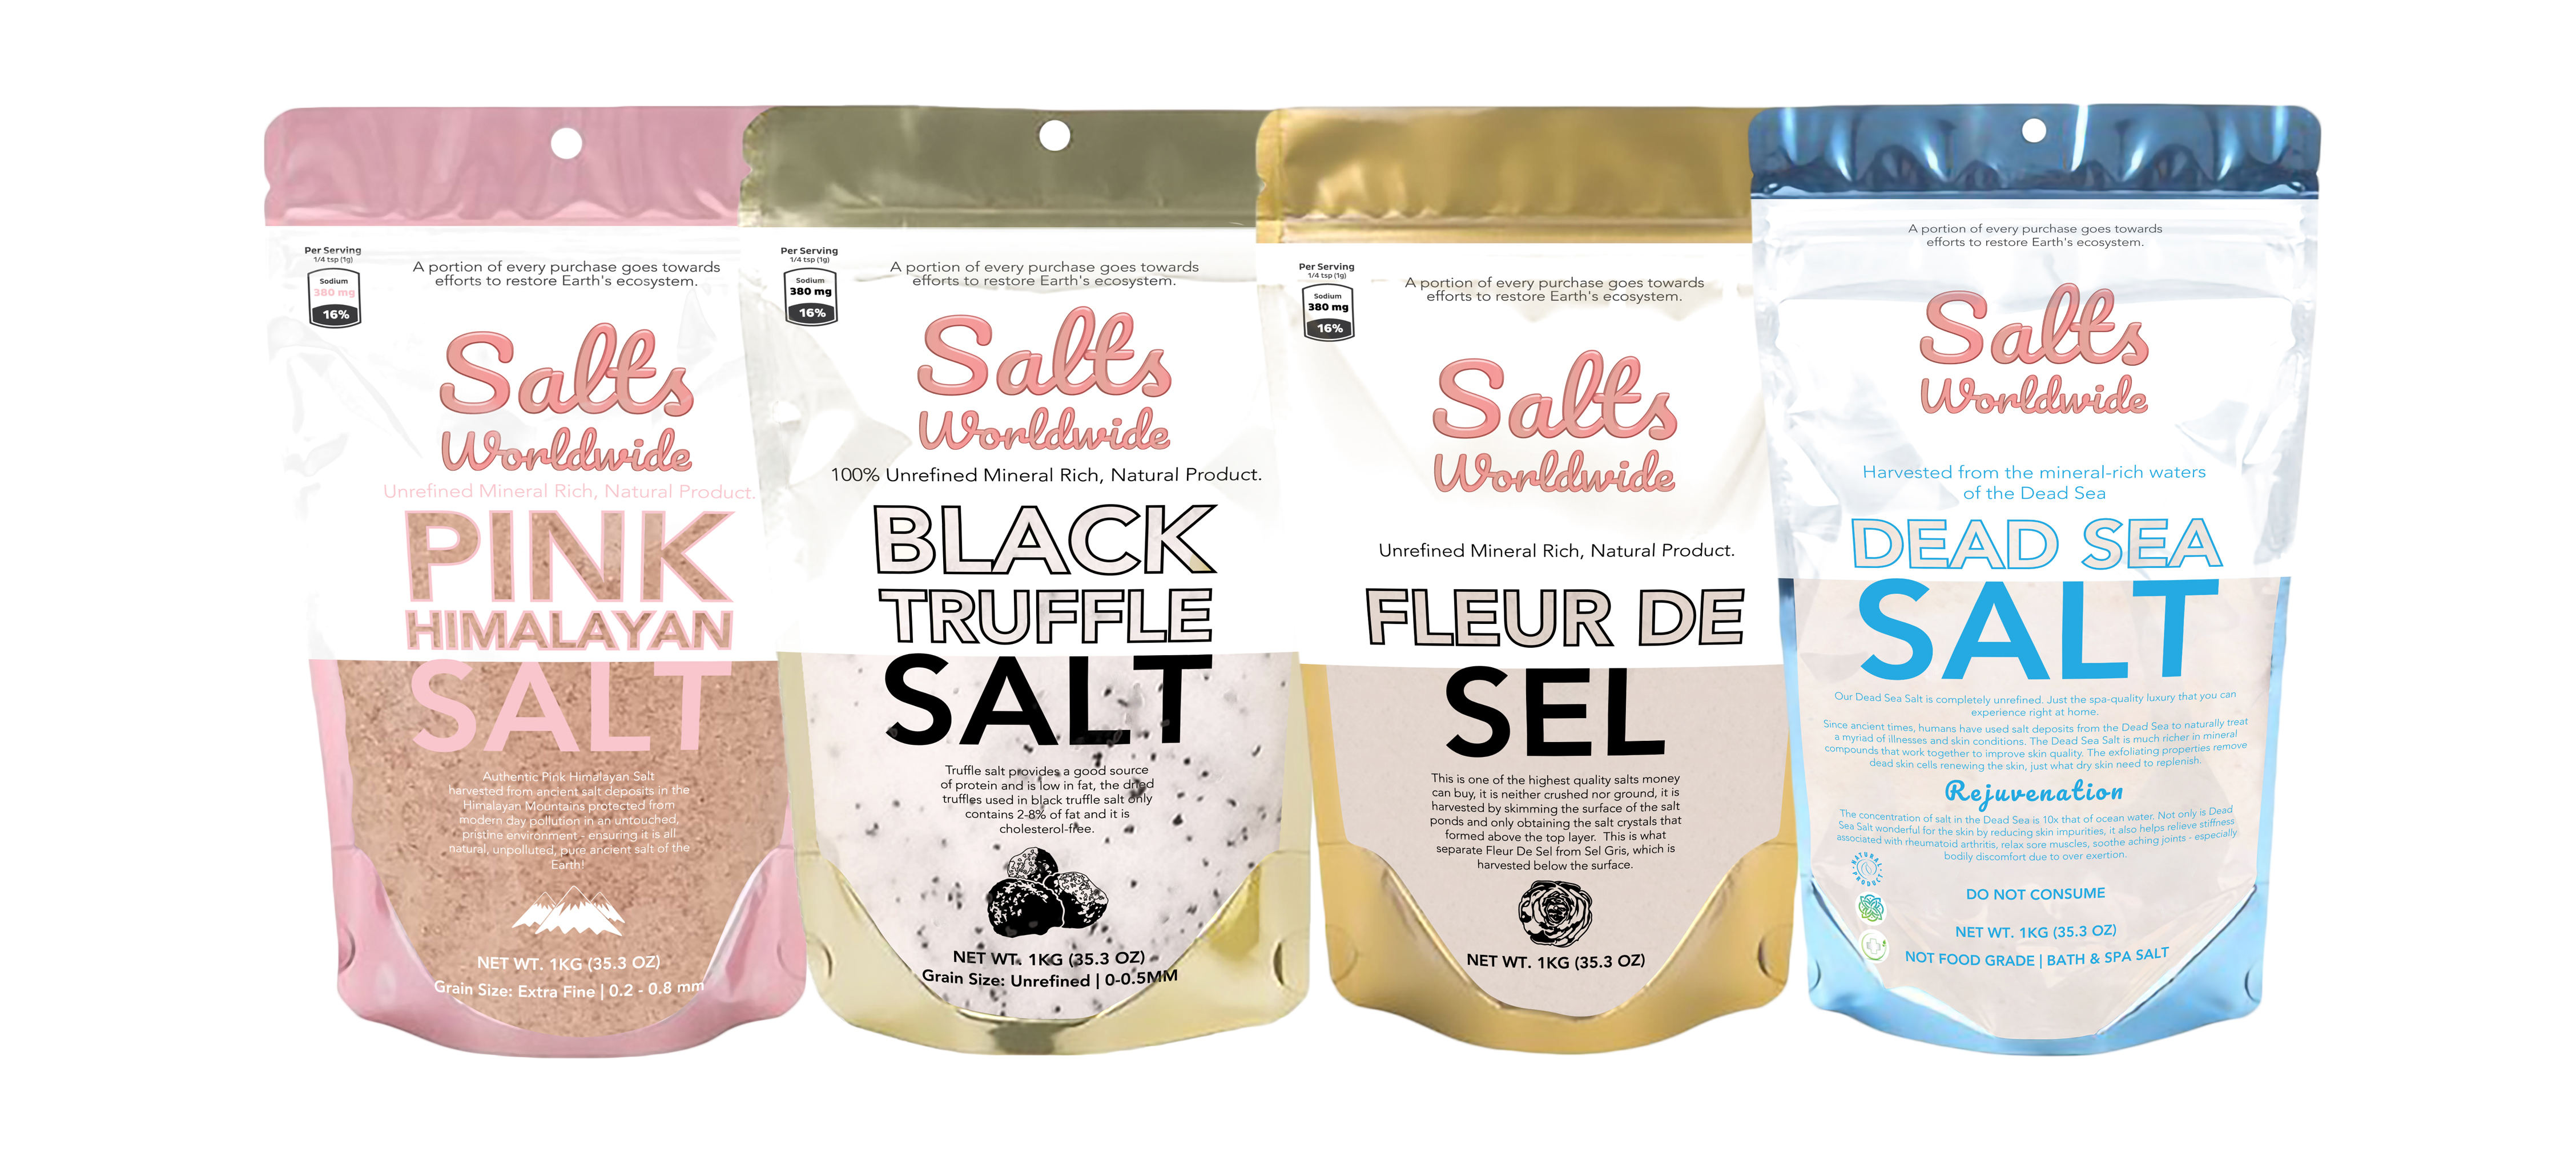 Salts Worldwide Now Offers Dead Sea Salt In 1 Kilogram Packages